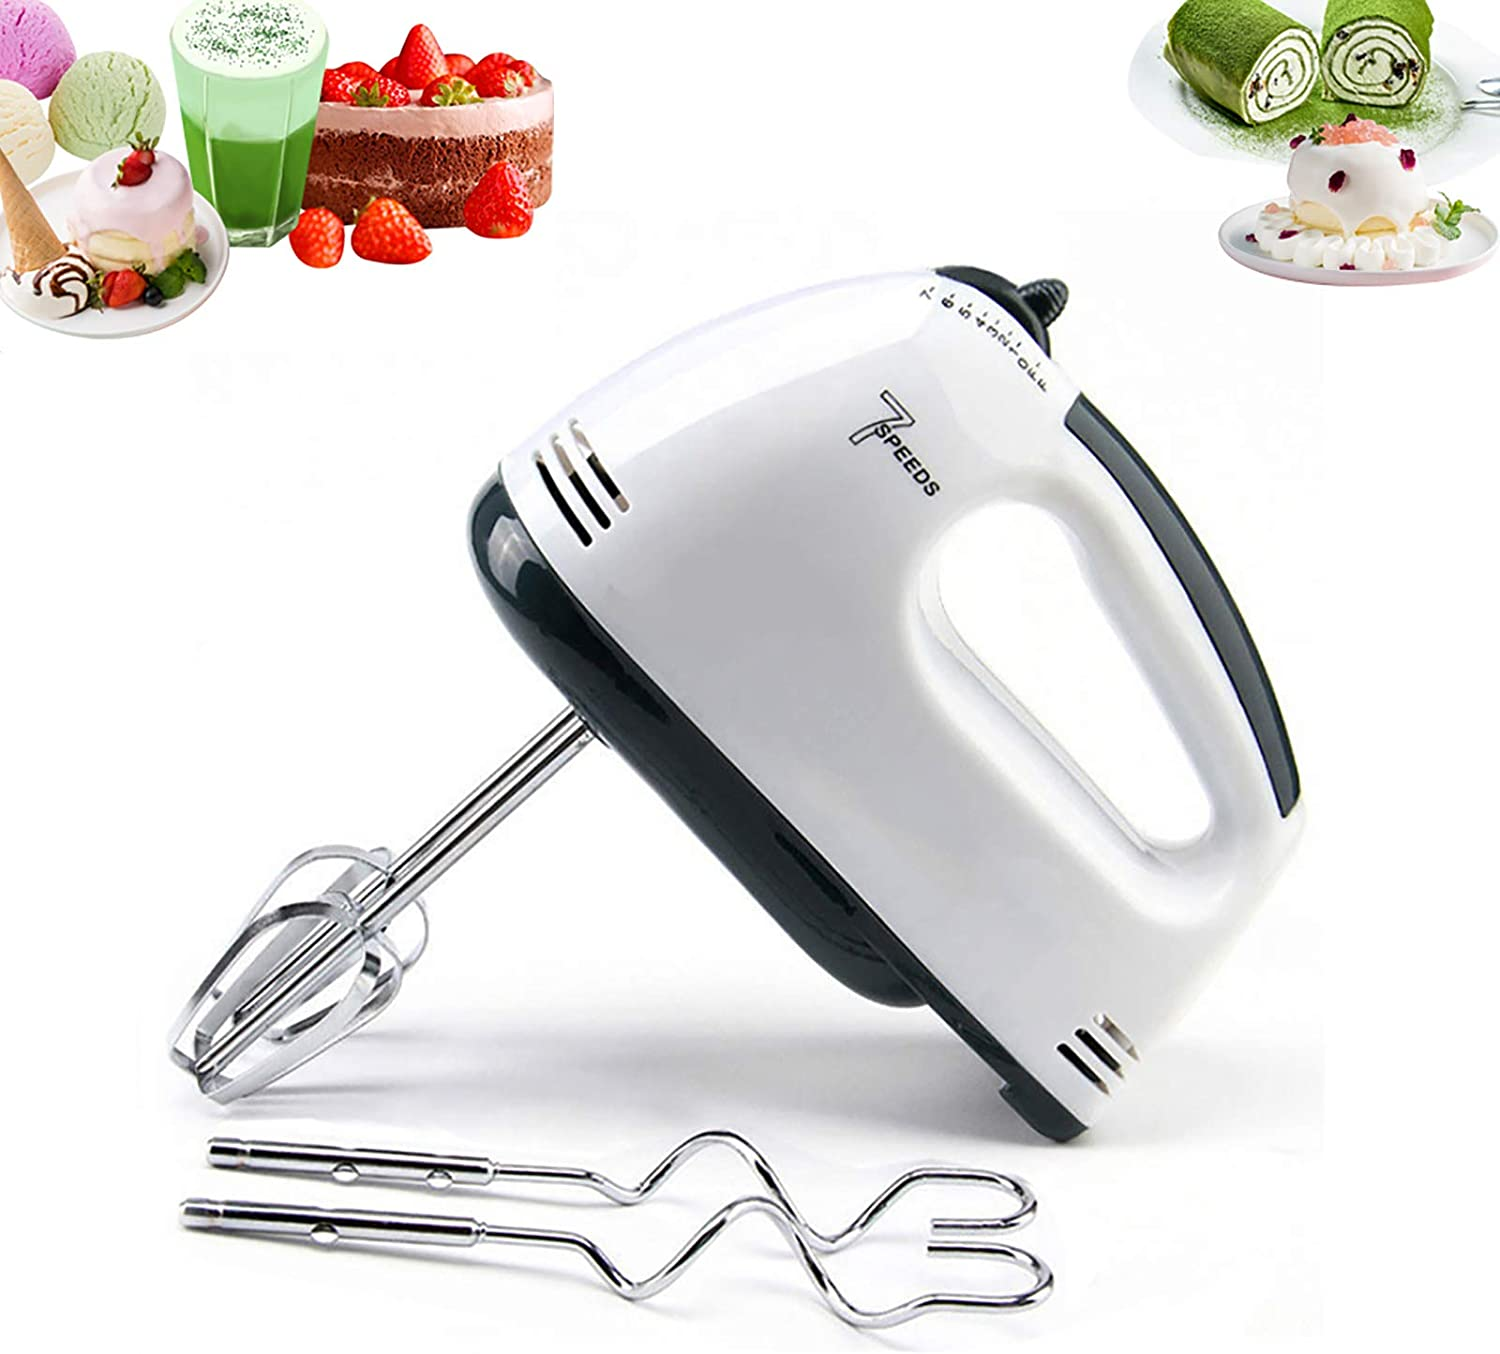 Hand Mixer Electric,7 Speed Portable Kitchen Hand Held Mixer,Immersion Blender Whisk for Food Whipping,Egg Whisk,Cake Mixer,Milk Frother,Bread Maker,Beater